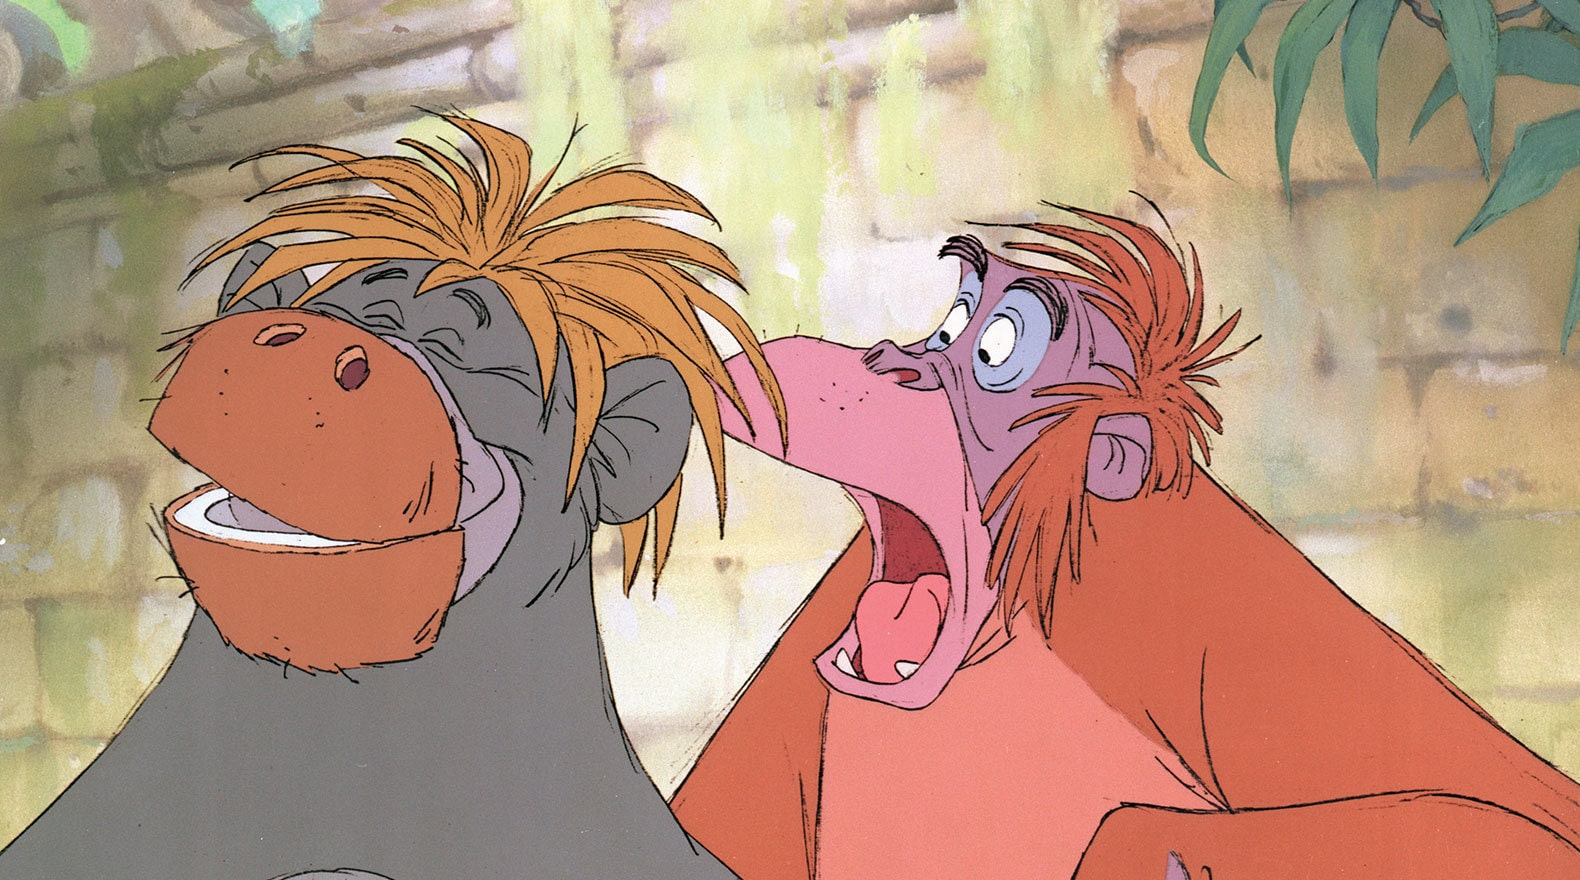 Baloo's cover is blown when his disguise comes apart. Baloo (voice of Phil Harris) and King Louie (voice of Louis Prima) from the Disney movie The Jungle Book (1967).